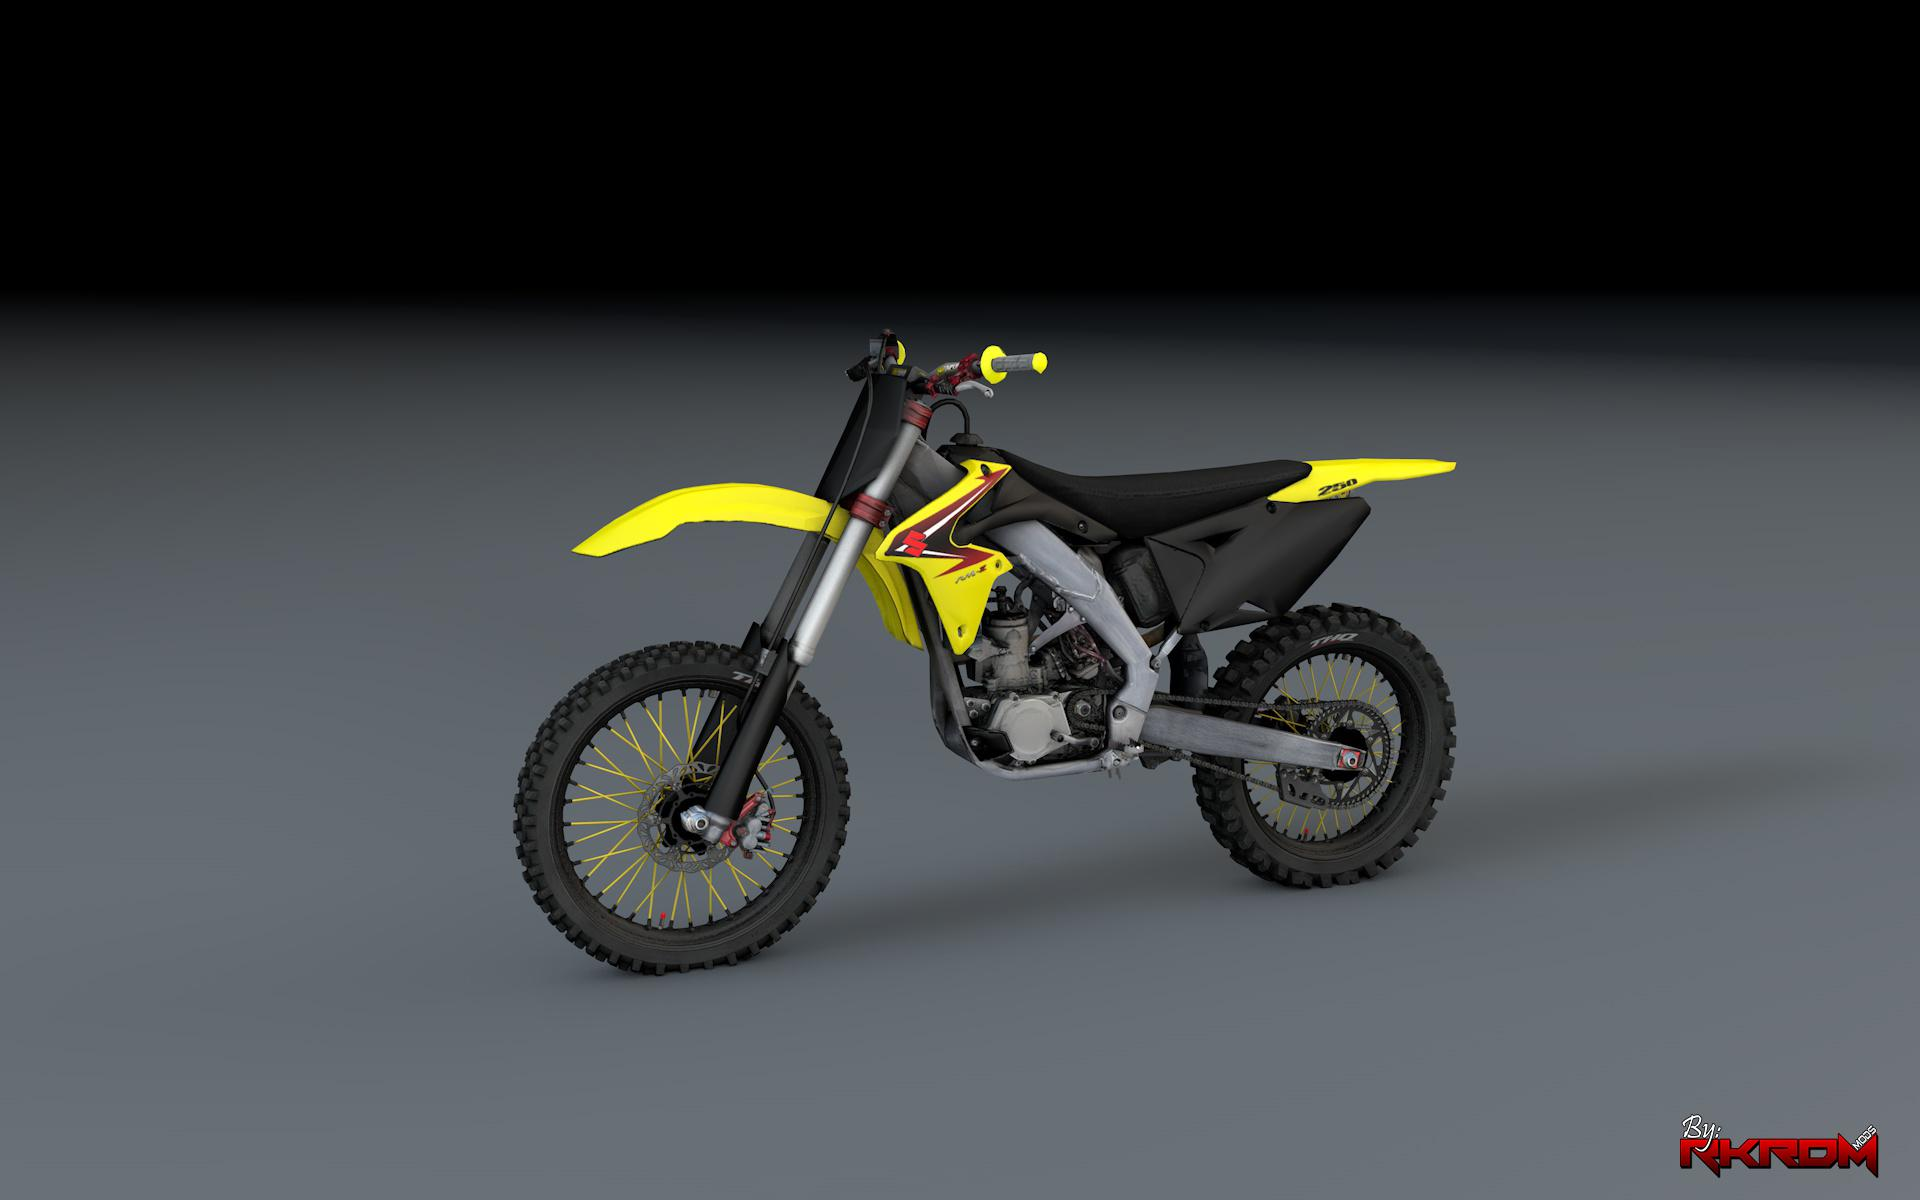 suzuki rmz 250 4 stroke with liveries gta5. Black Bedroom Furniture Sets. Home Design Ideas